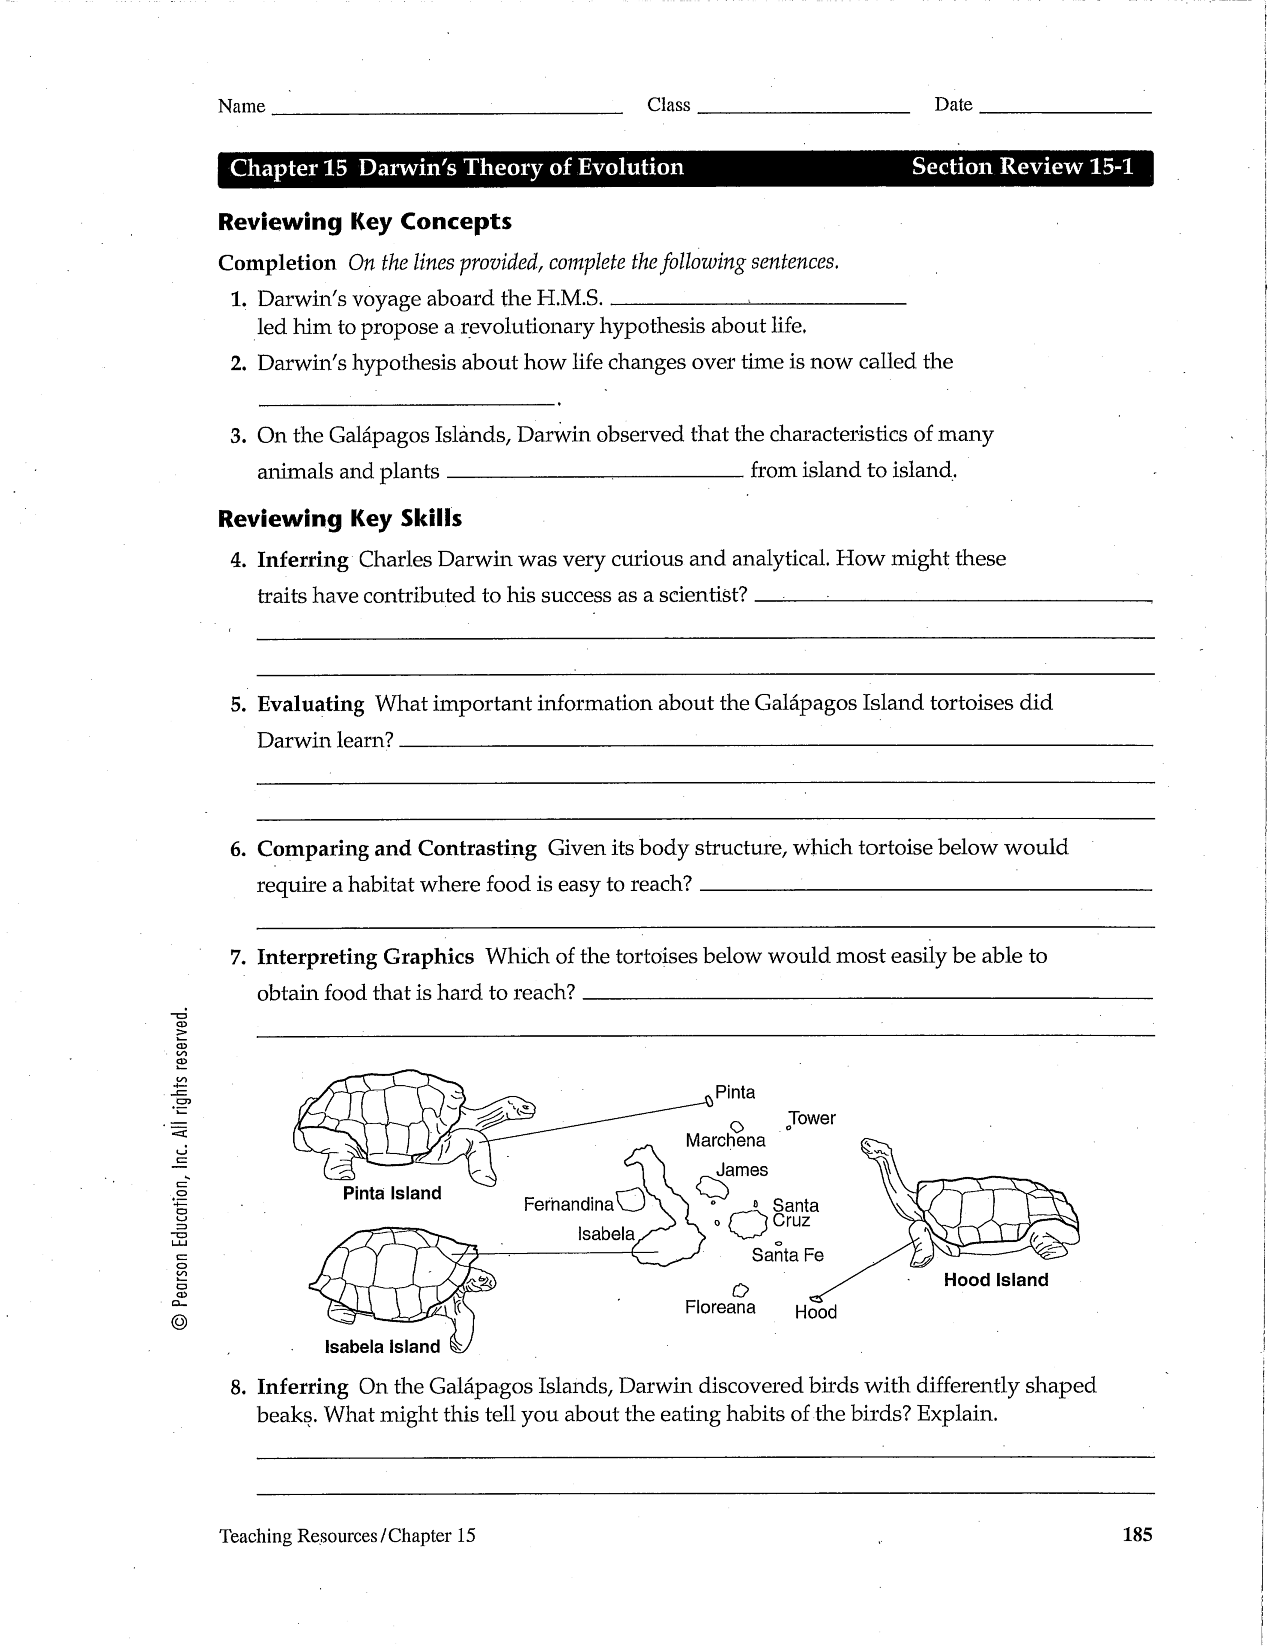 worksheet Nova Absolute Zero Worksheet darwins theory of evolution worksheet chapter 15 worksheet